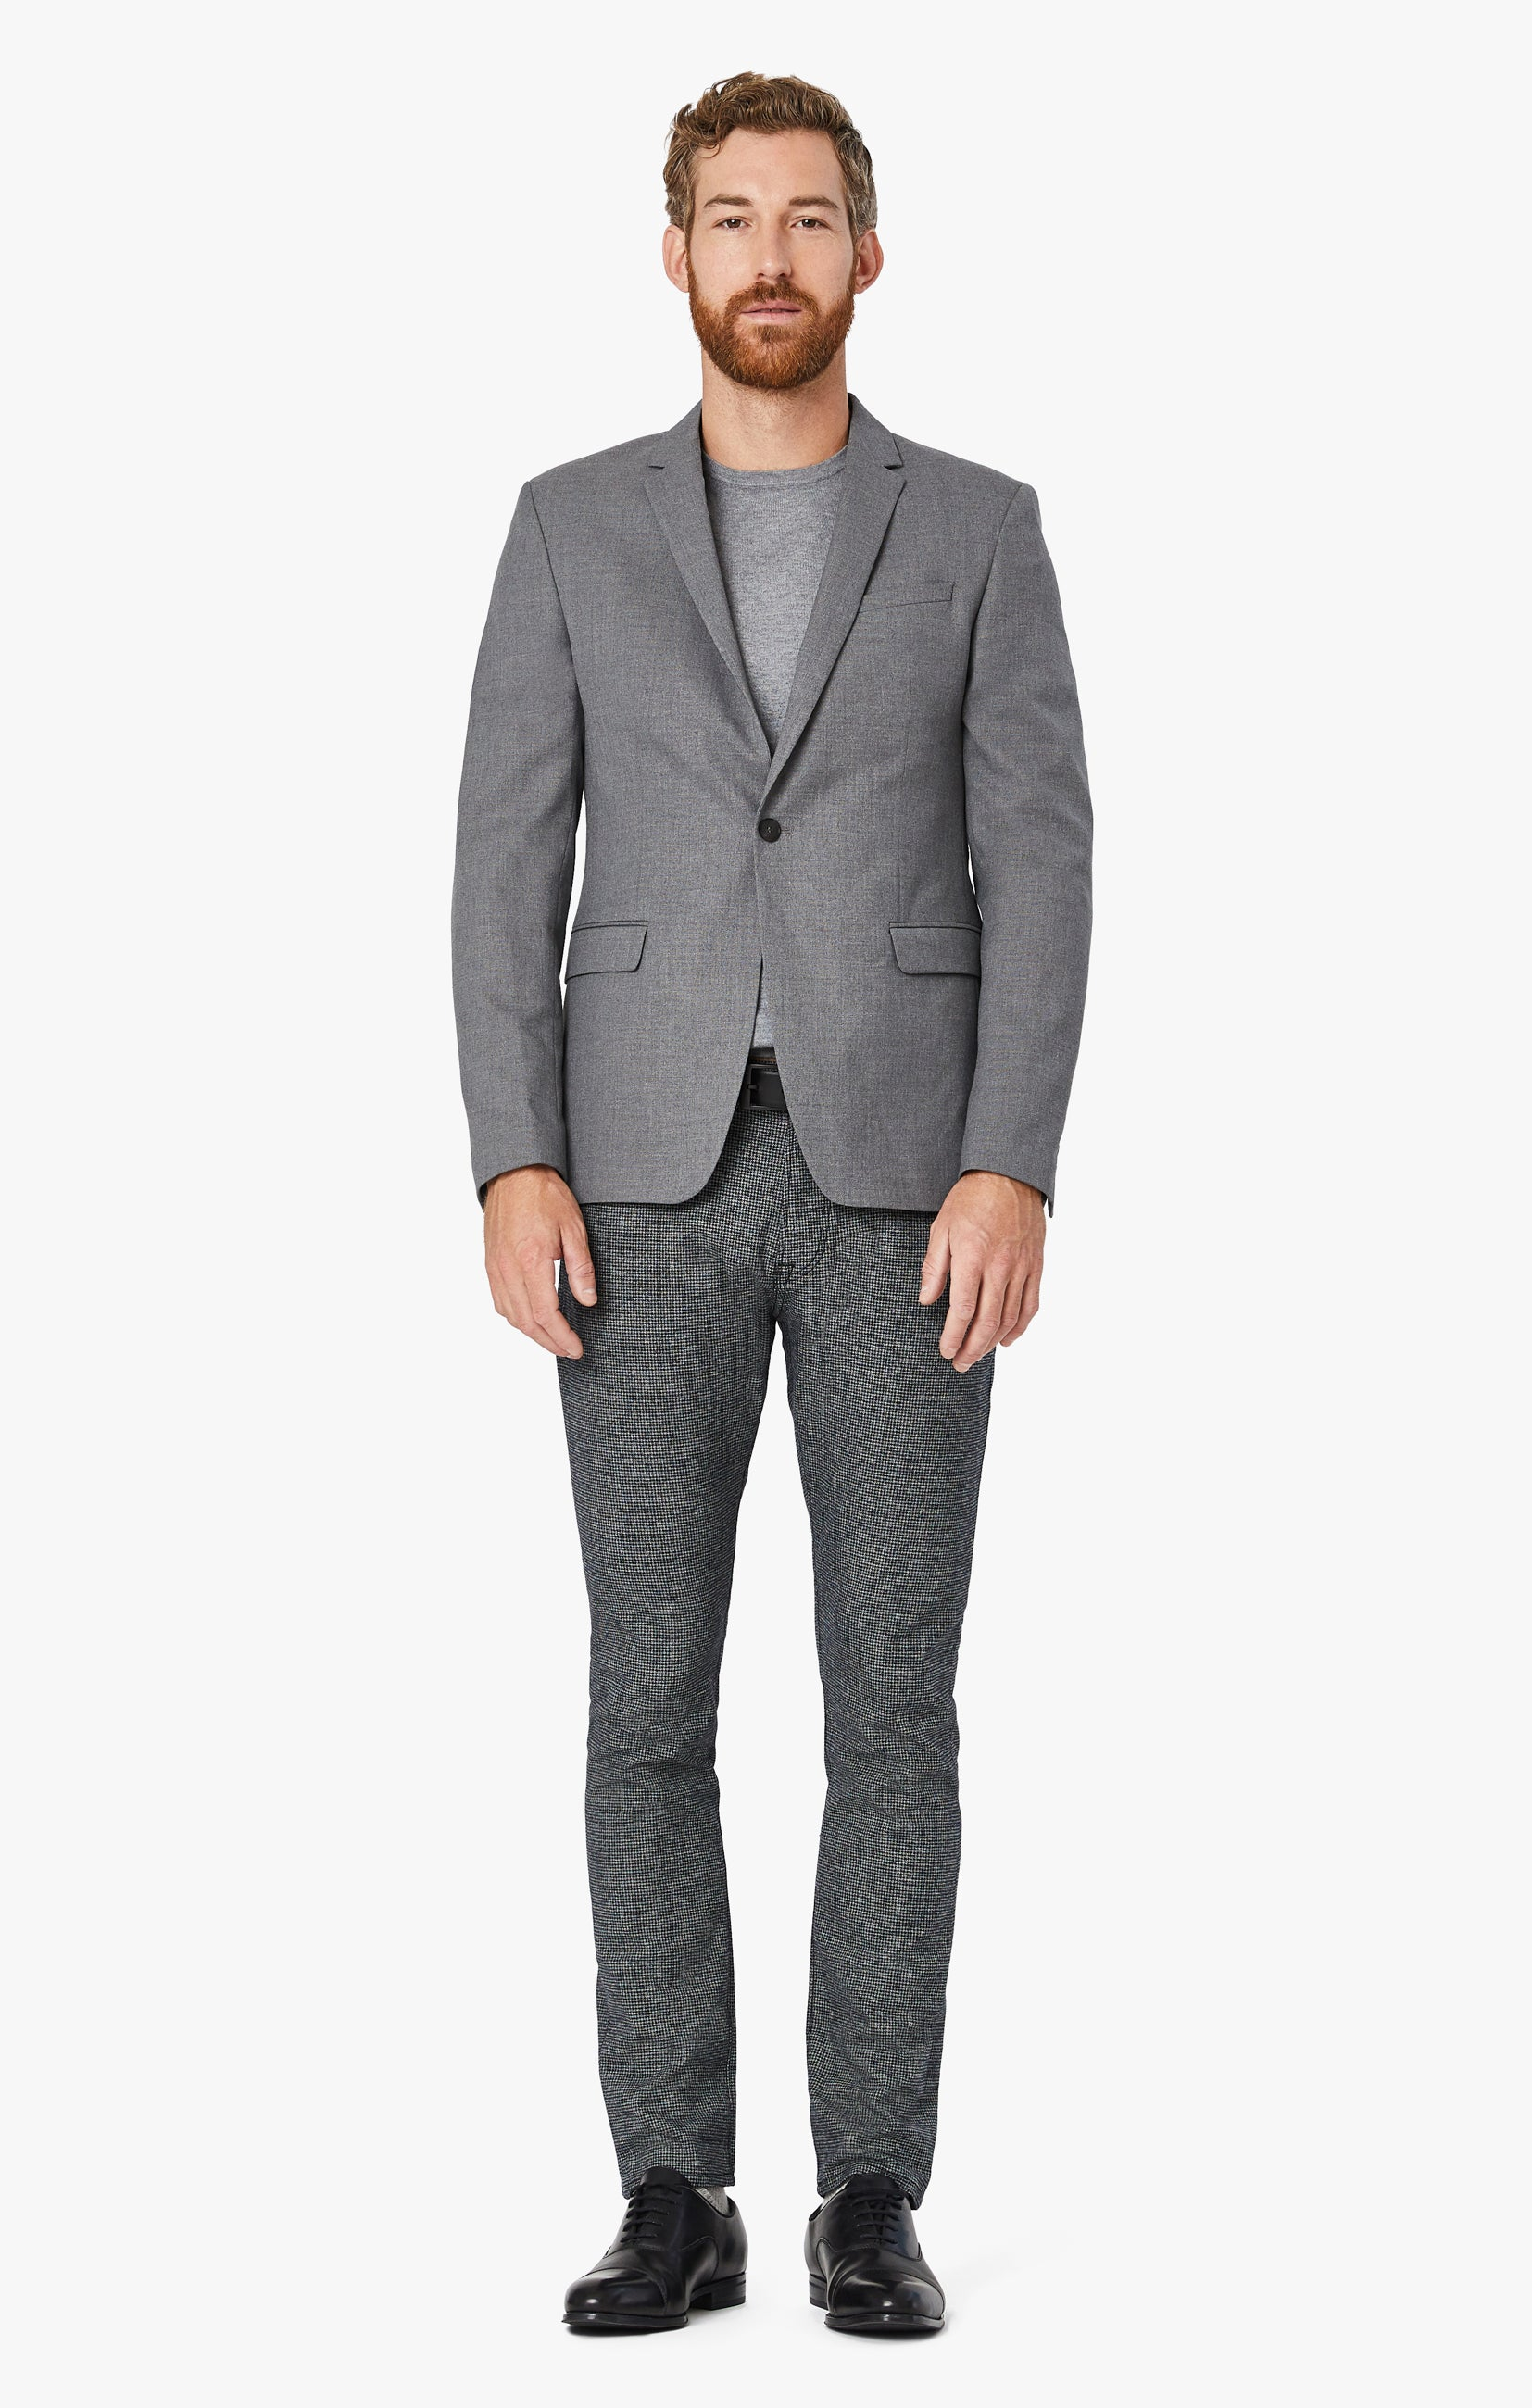 Courage Straight Leg Pants In Grey Houndstooth Image 4